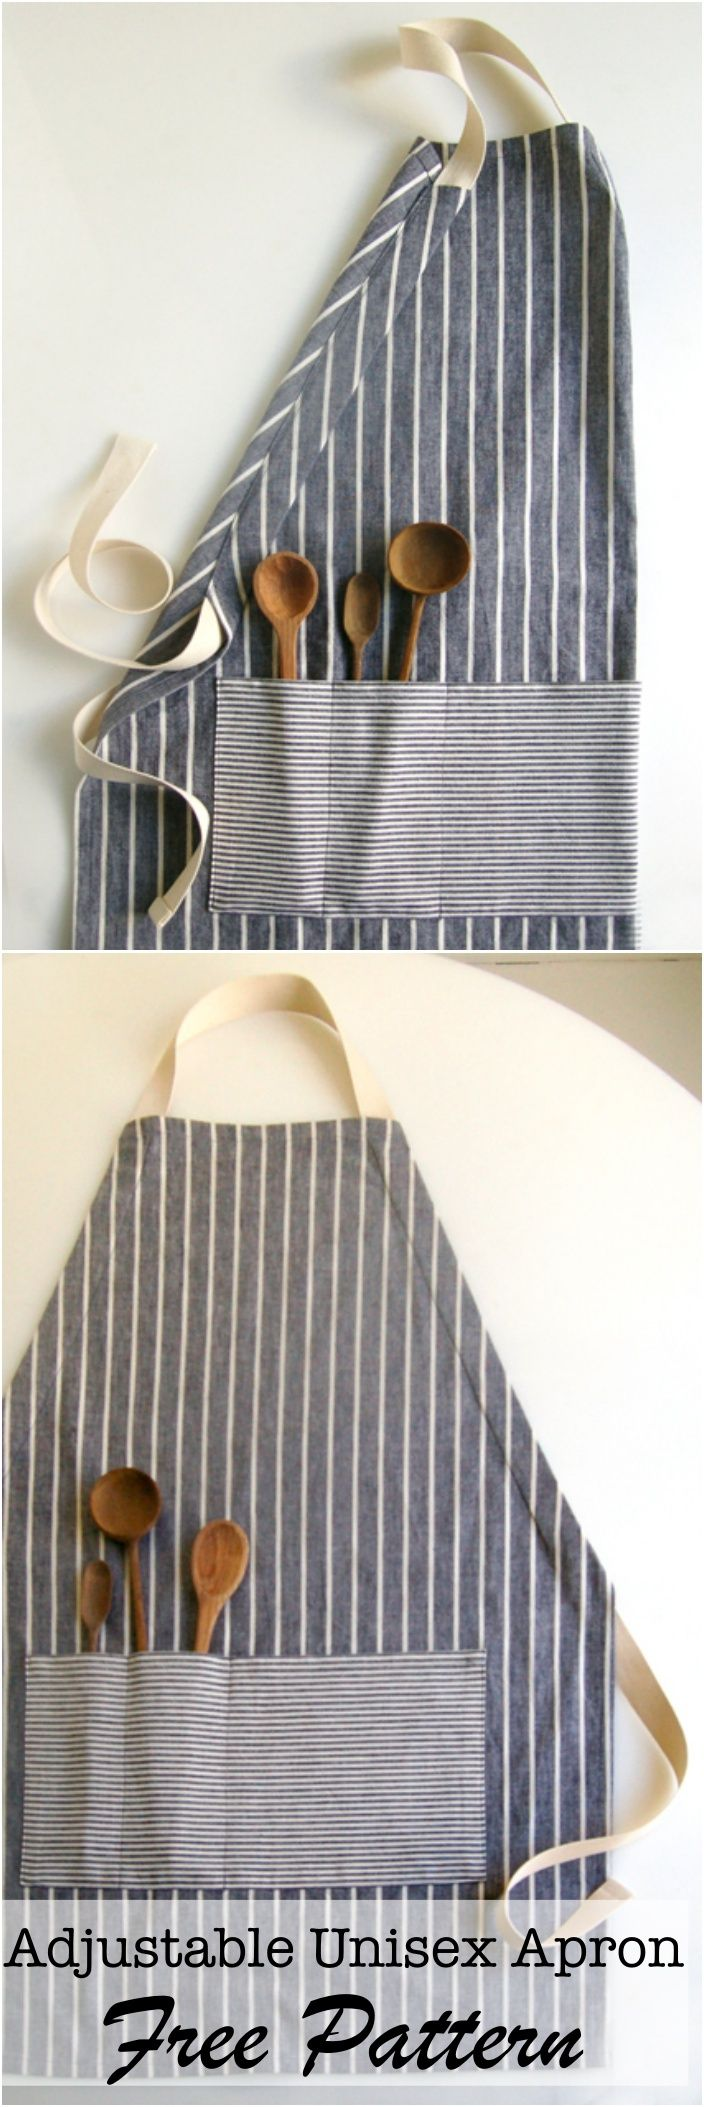 Free Adjustable Unisex Apron Tutorial